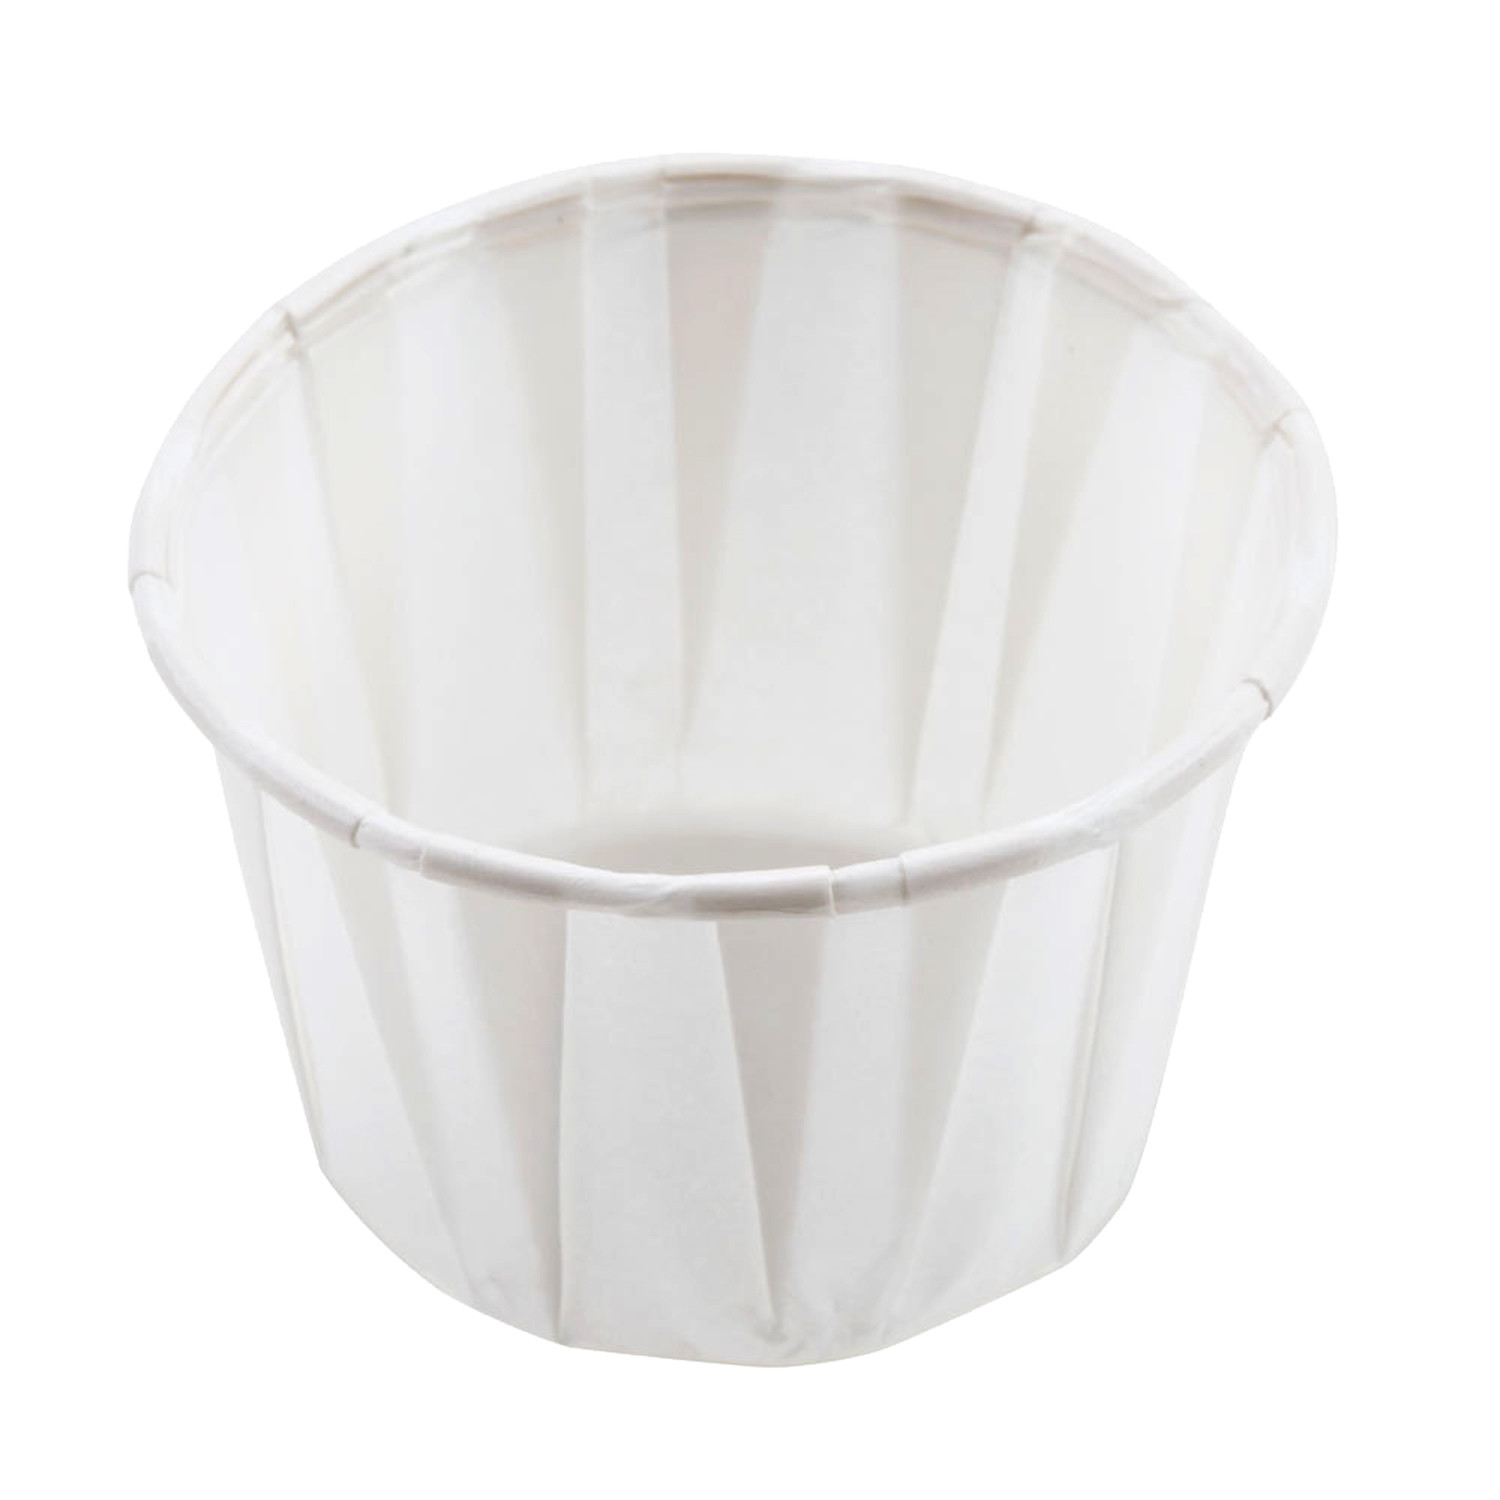 .75 oz Paper Souffle Cups. 250/Tube